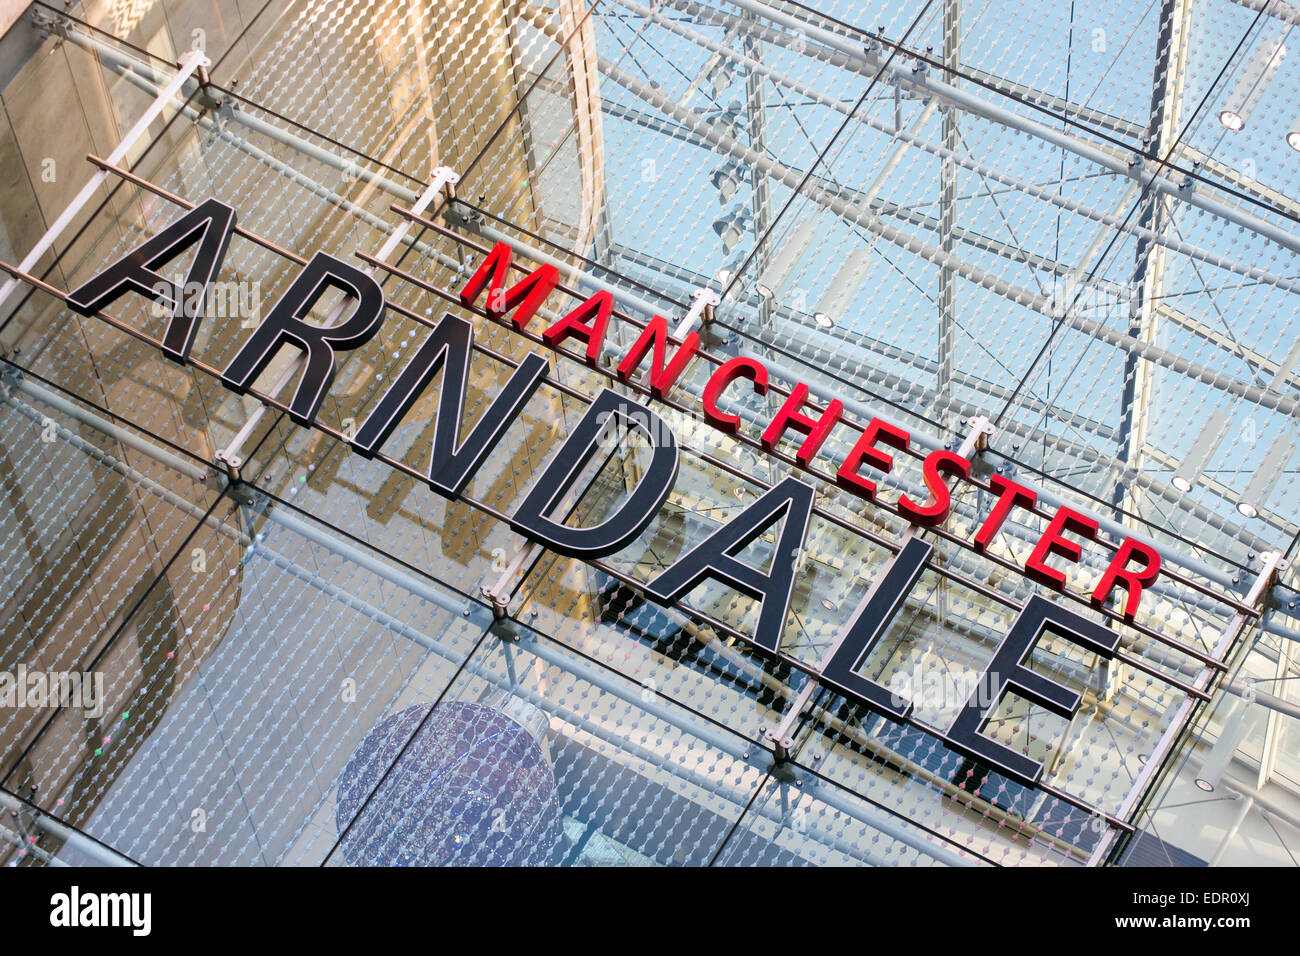 Manchester Arndale - Stock Image